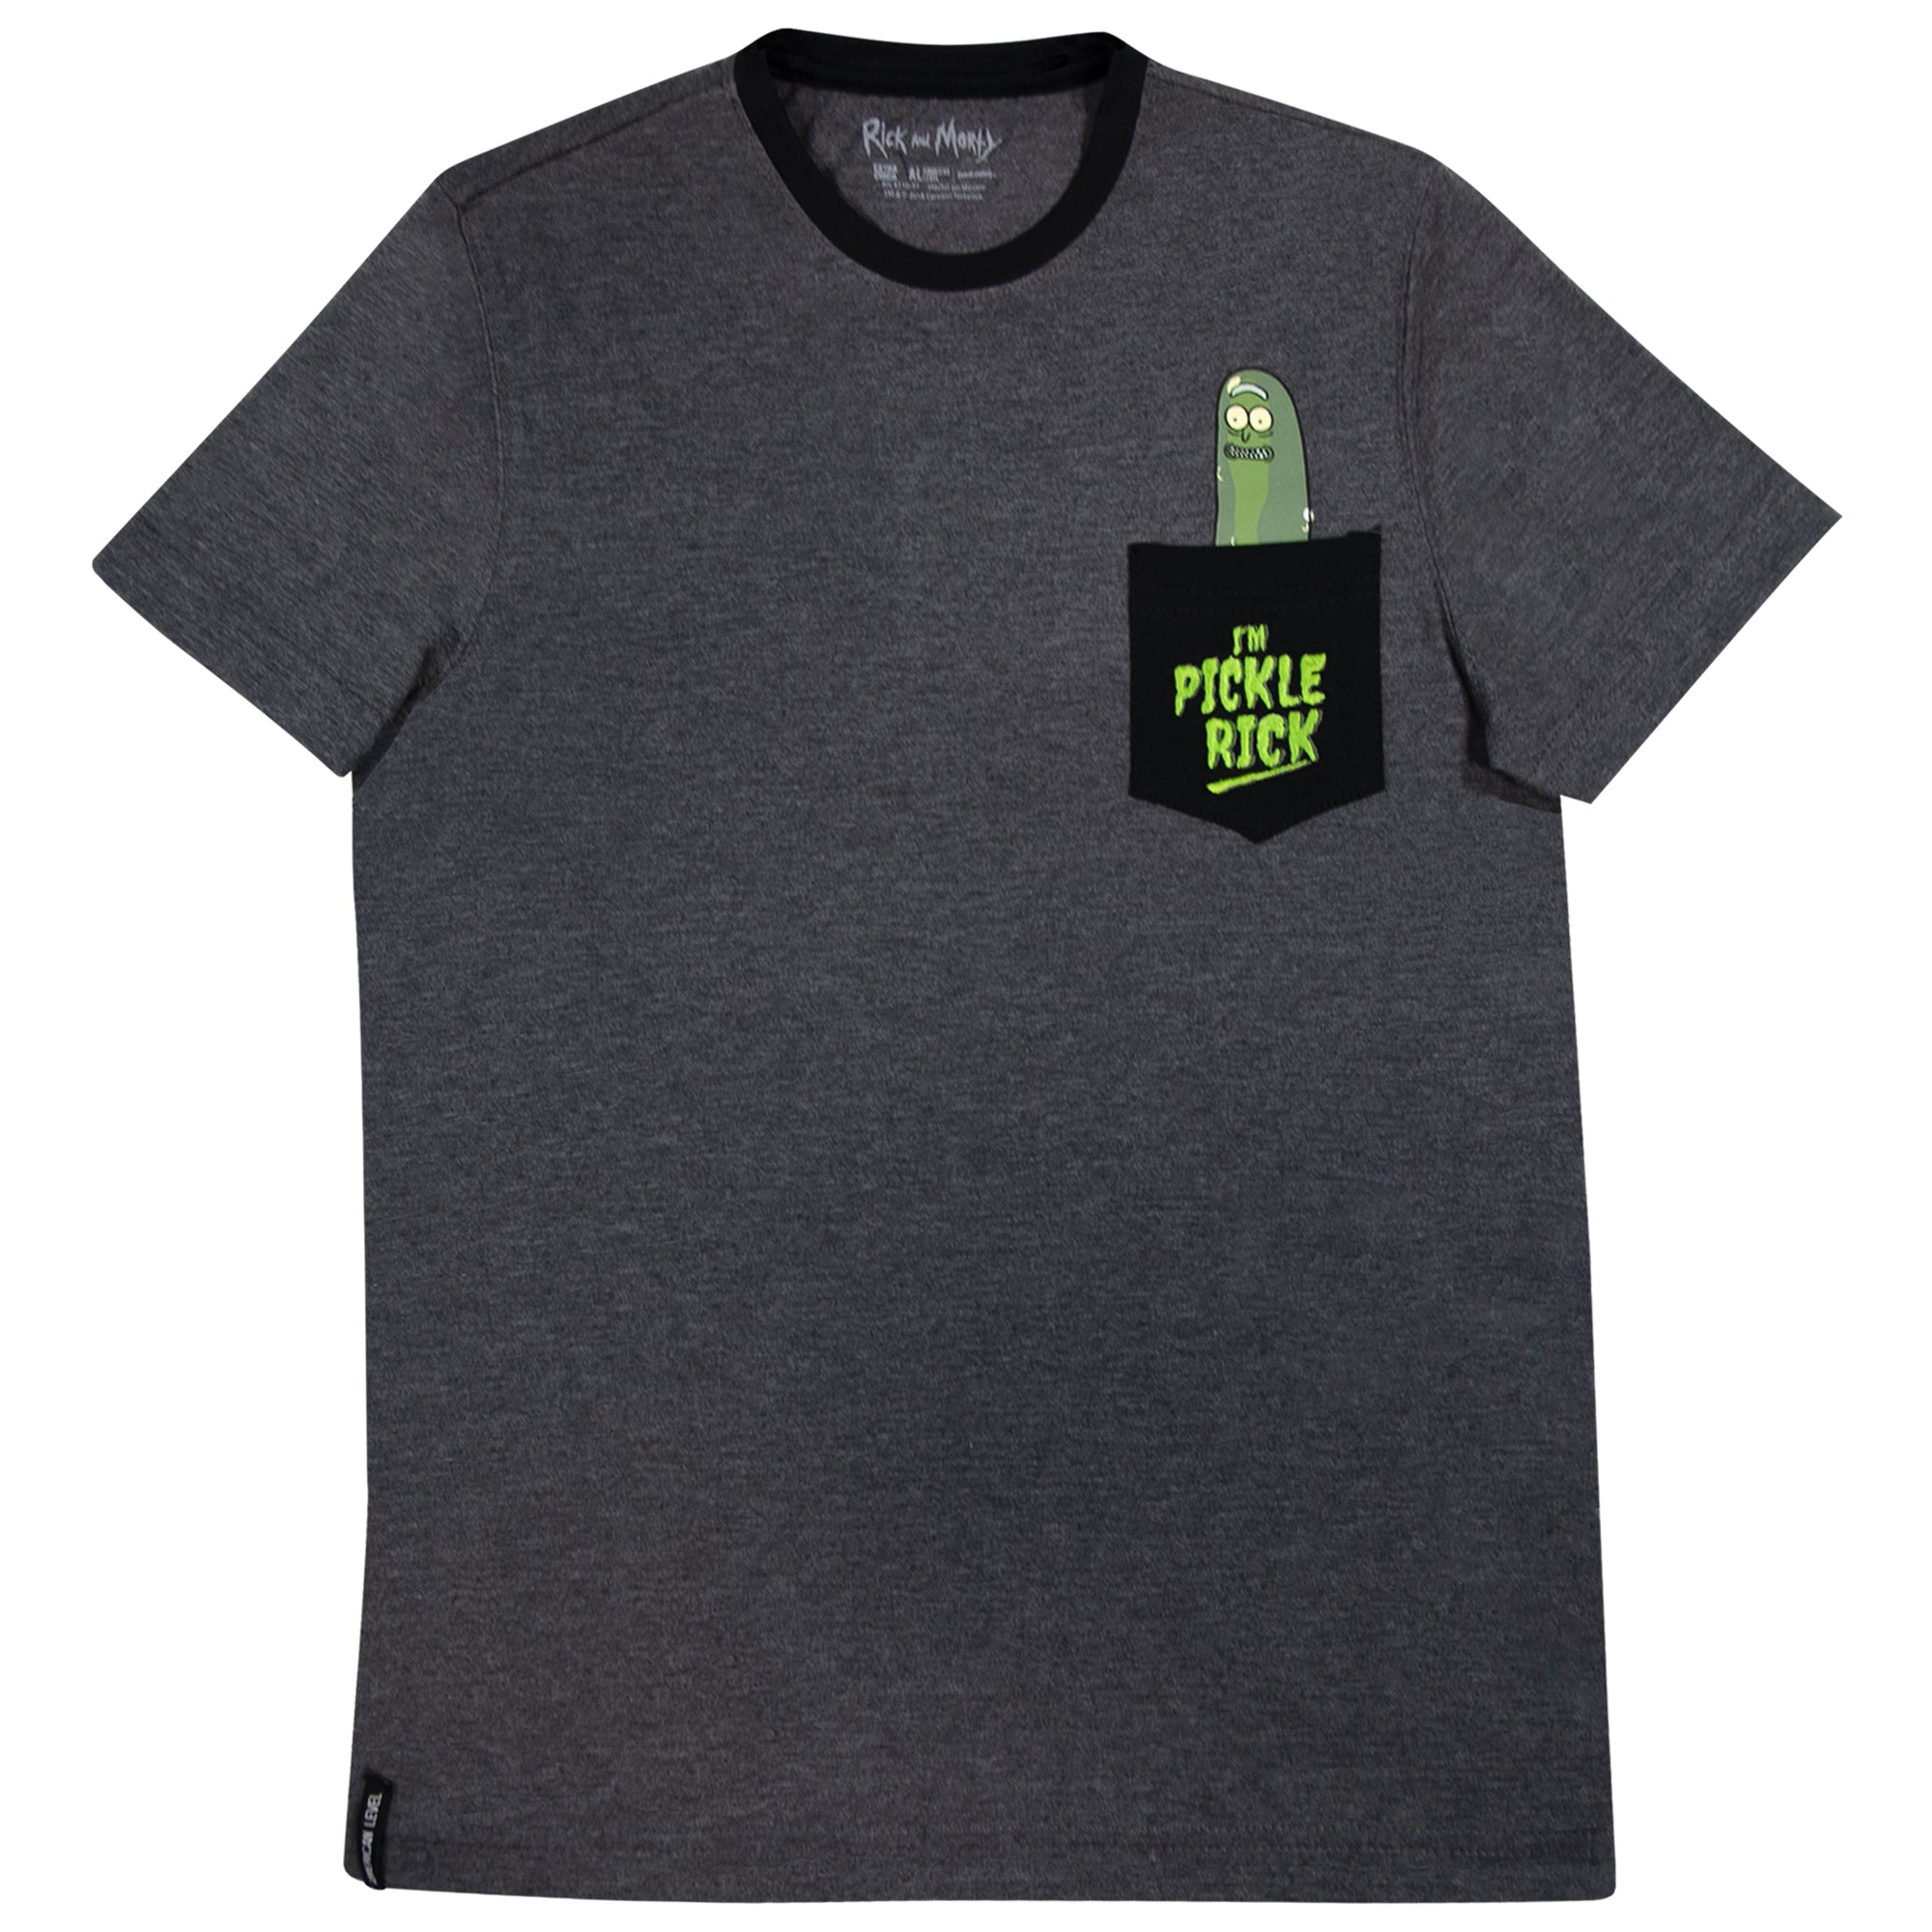 Playera Rick & Morty -Pickle Rick